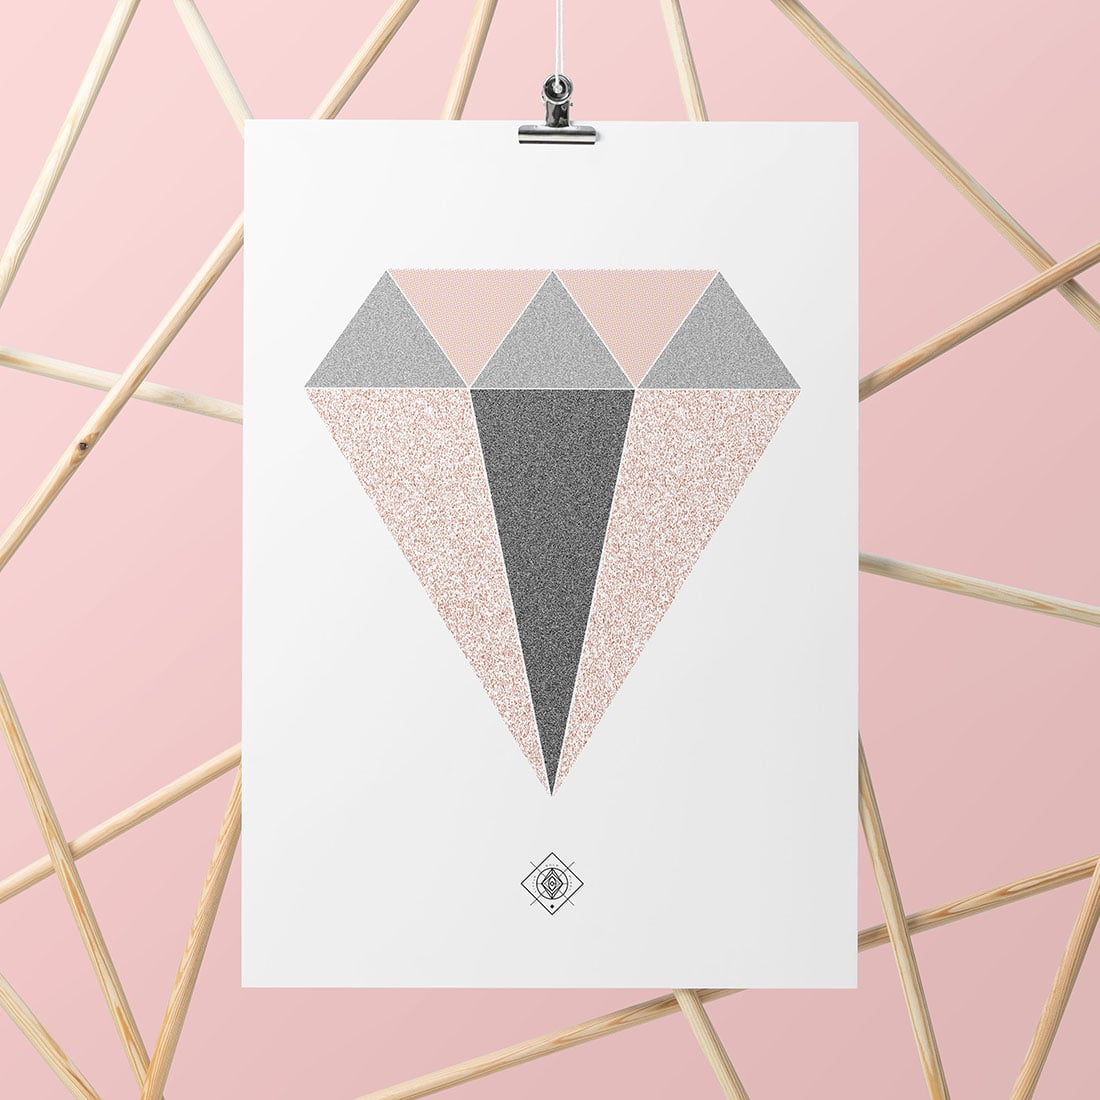 Geometric Diamond Free Printable • Little Gold Pixel • Download this diamond free printable as part of my Freebie Friday series. Instant wall art! Bonus: watch the time-lapse video to see how I made it.